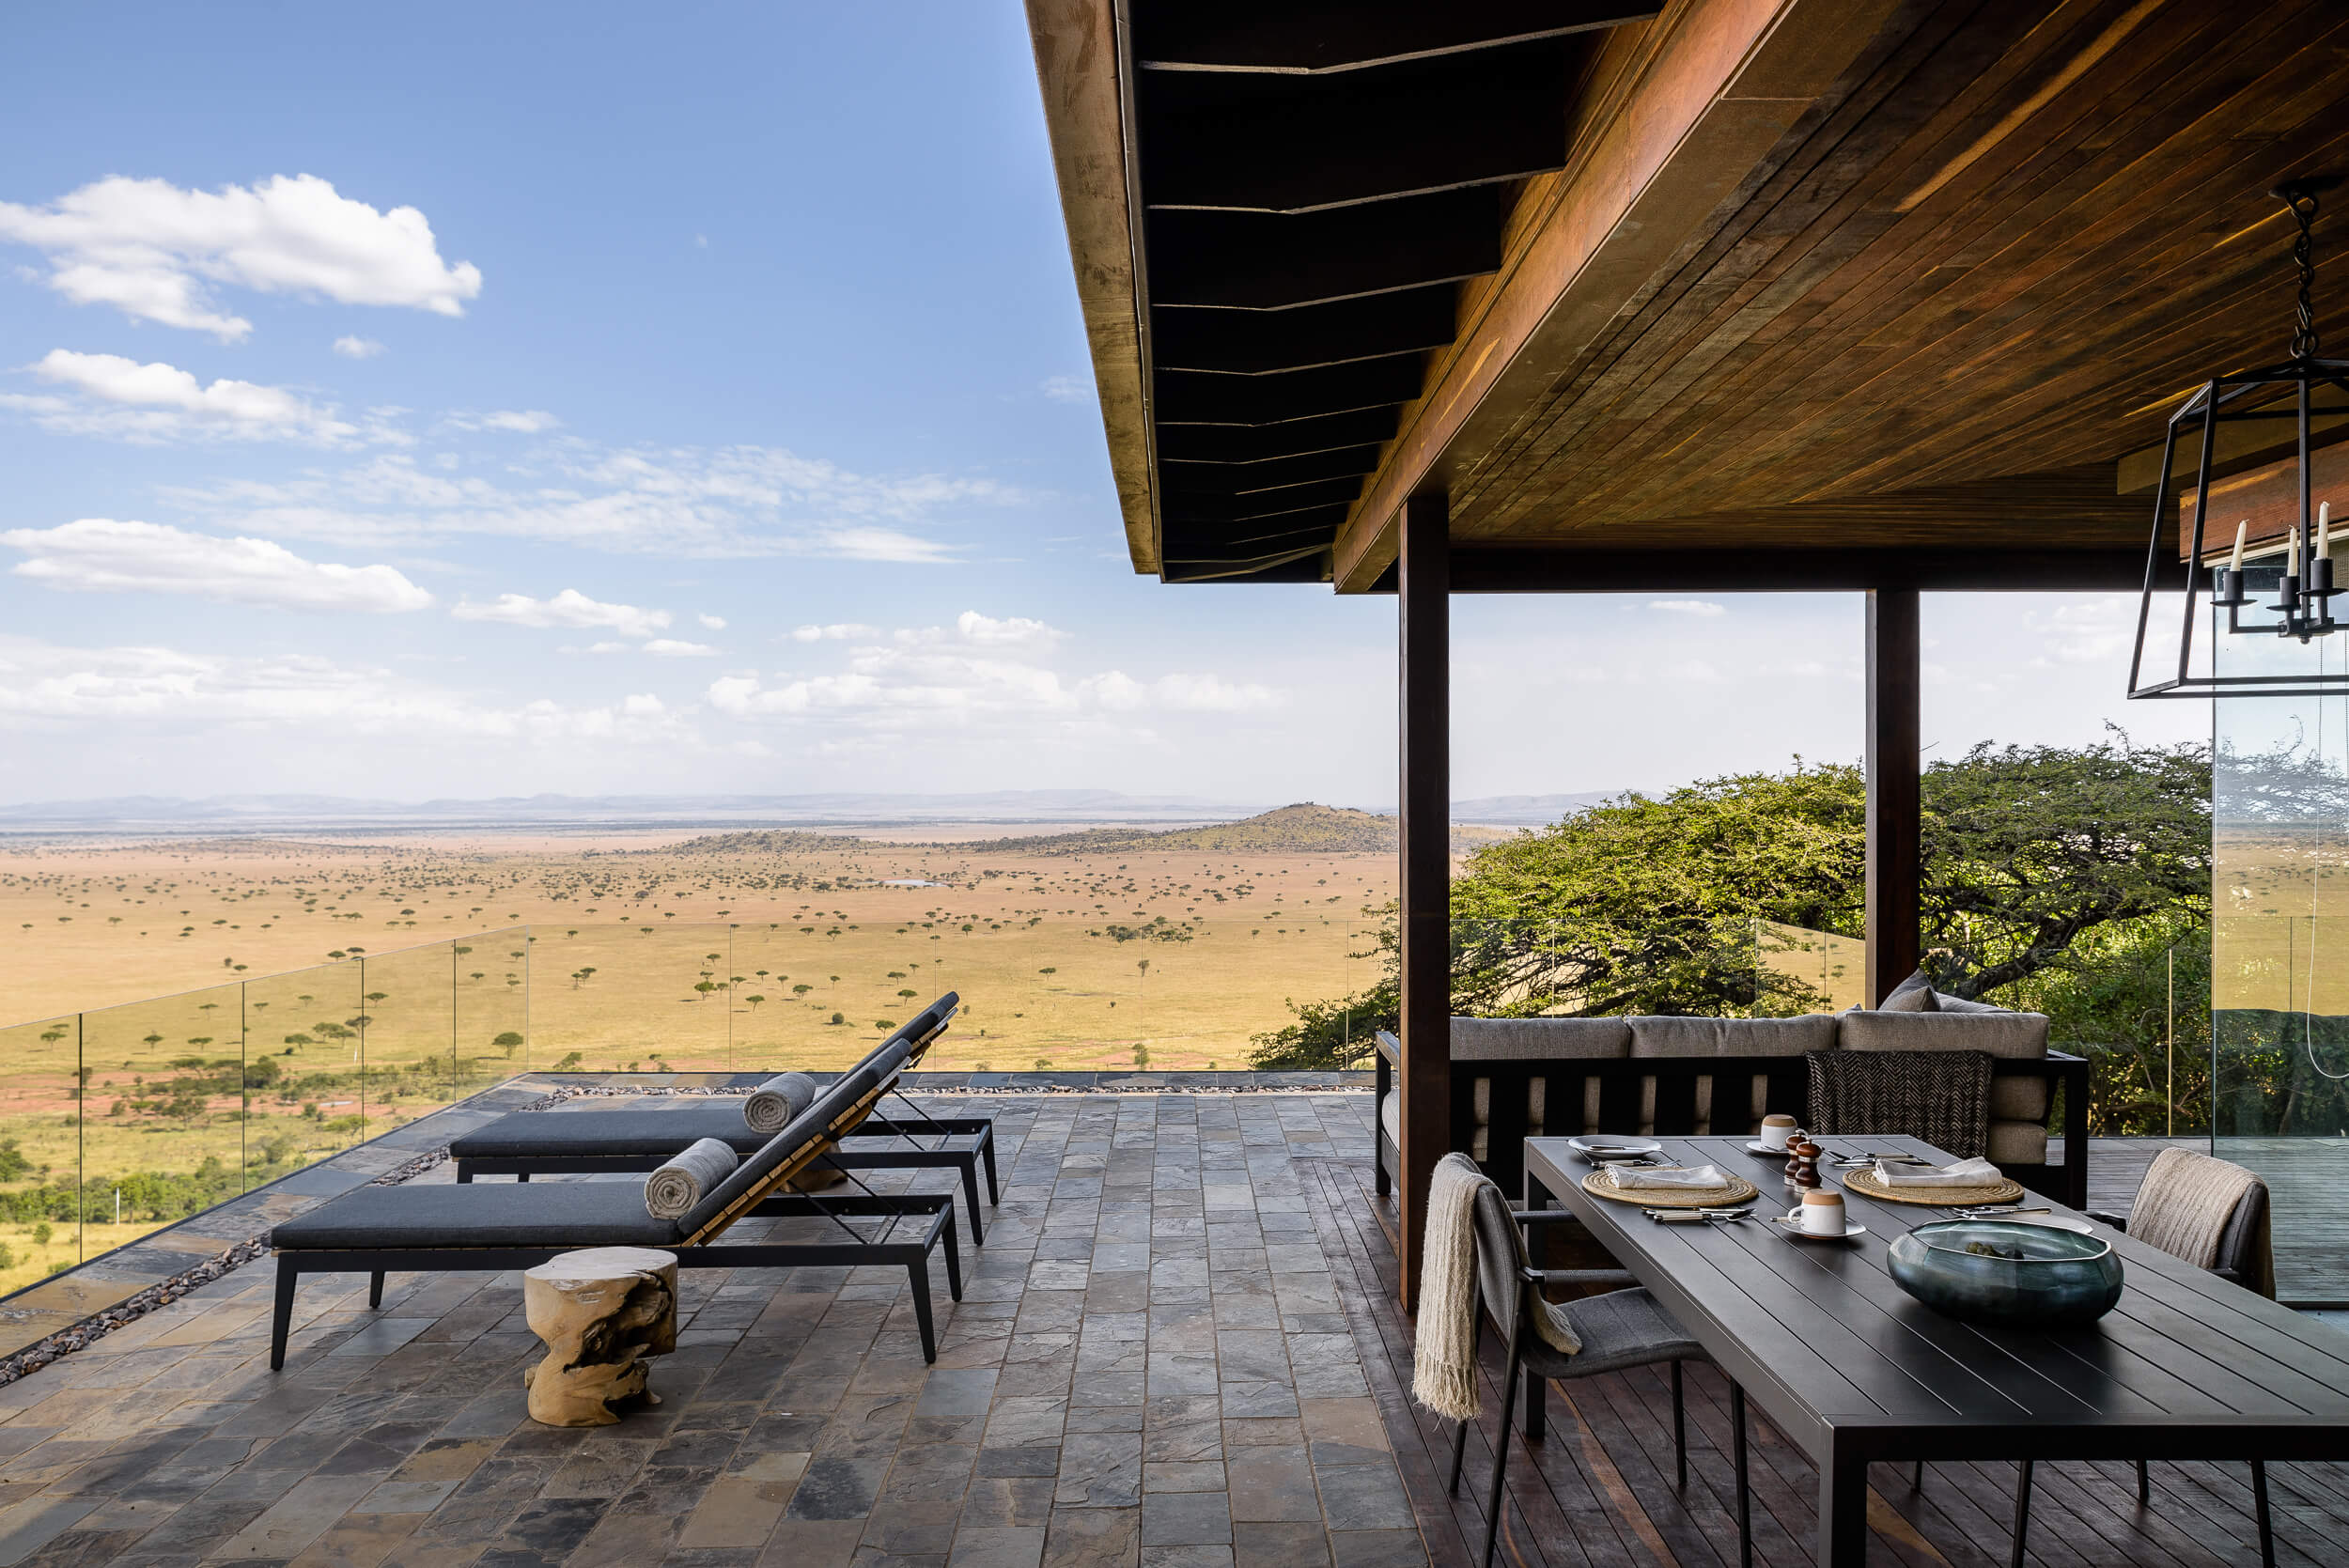 Hillside-Suite-Singita-Sasakwa-Lodge-Dining-on-the-Deck-with-a-View.jpg